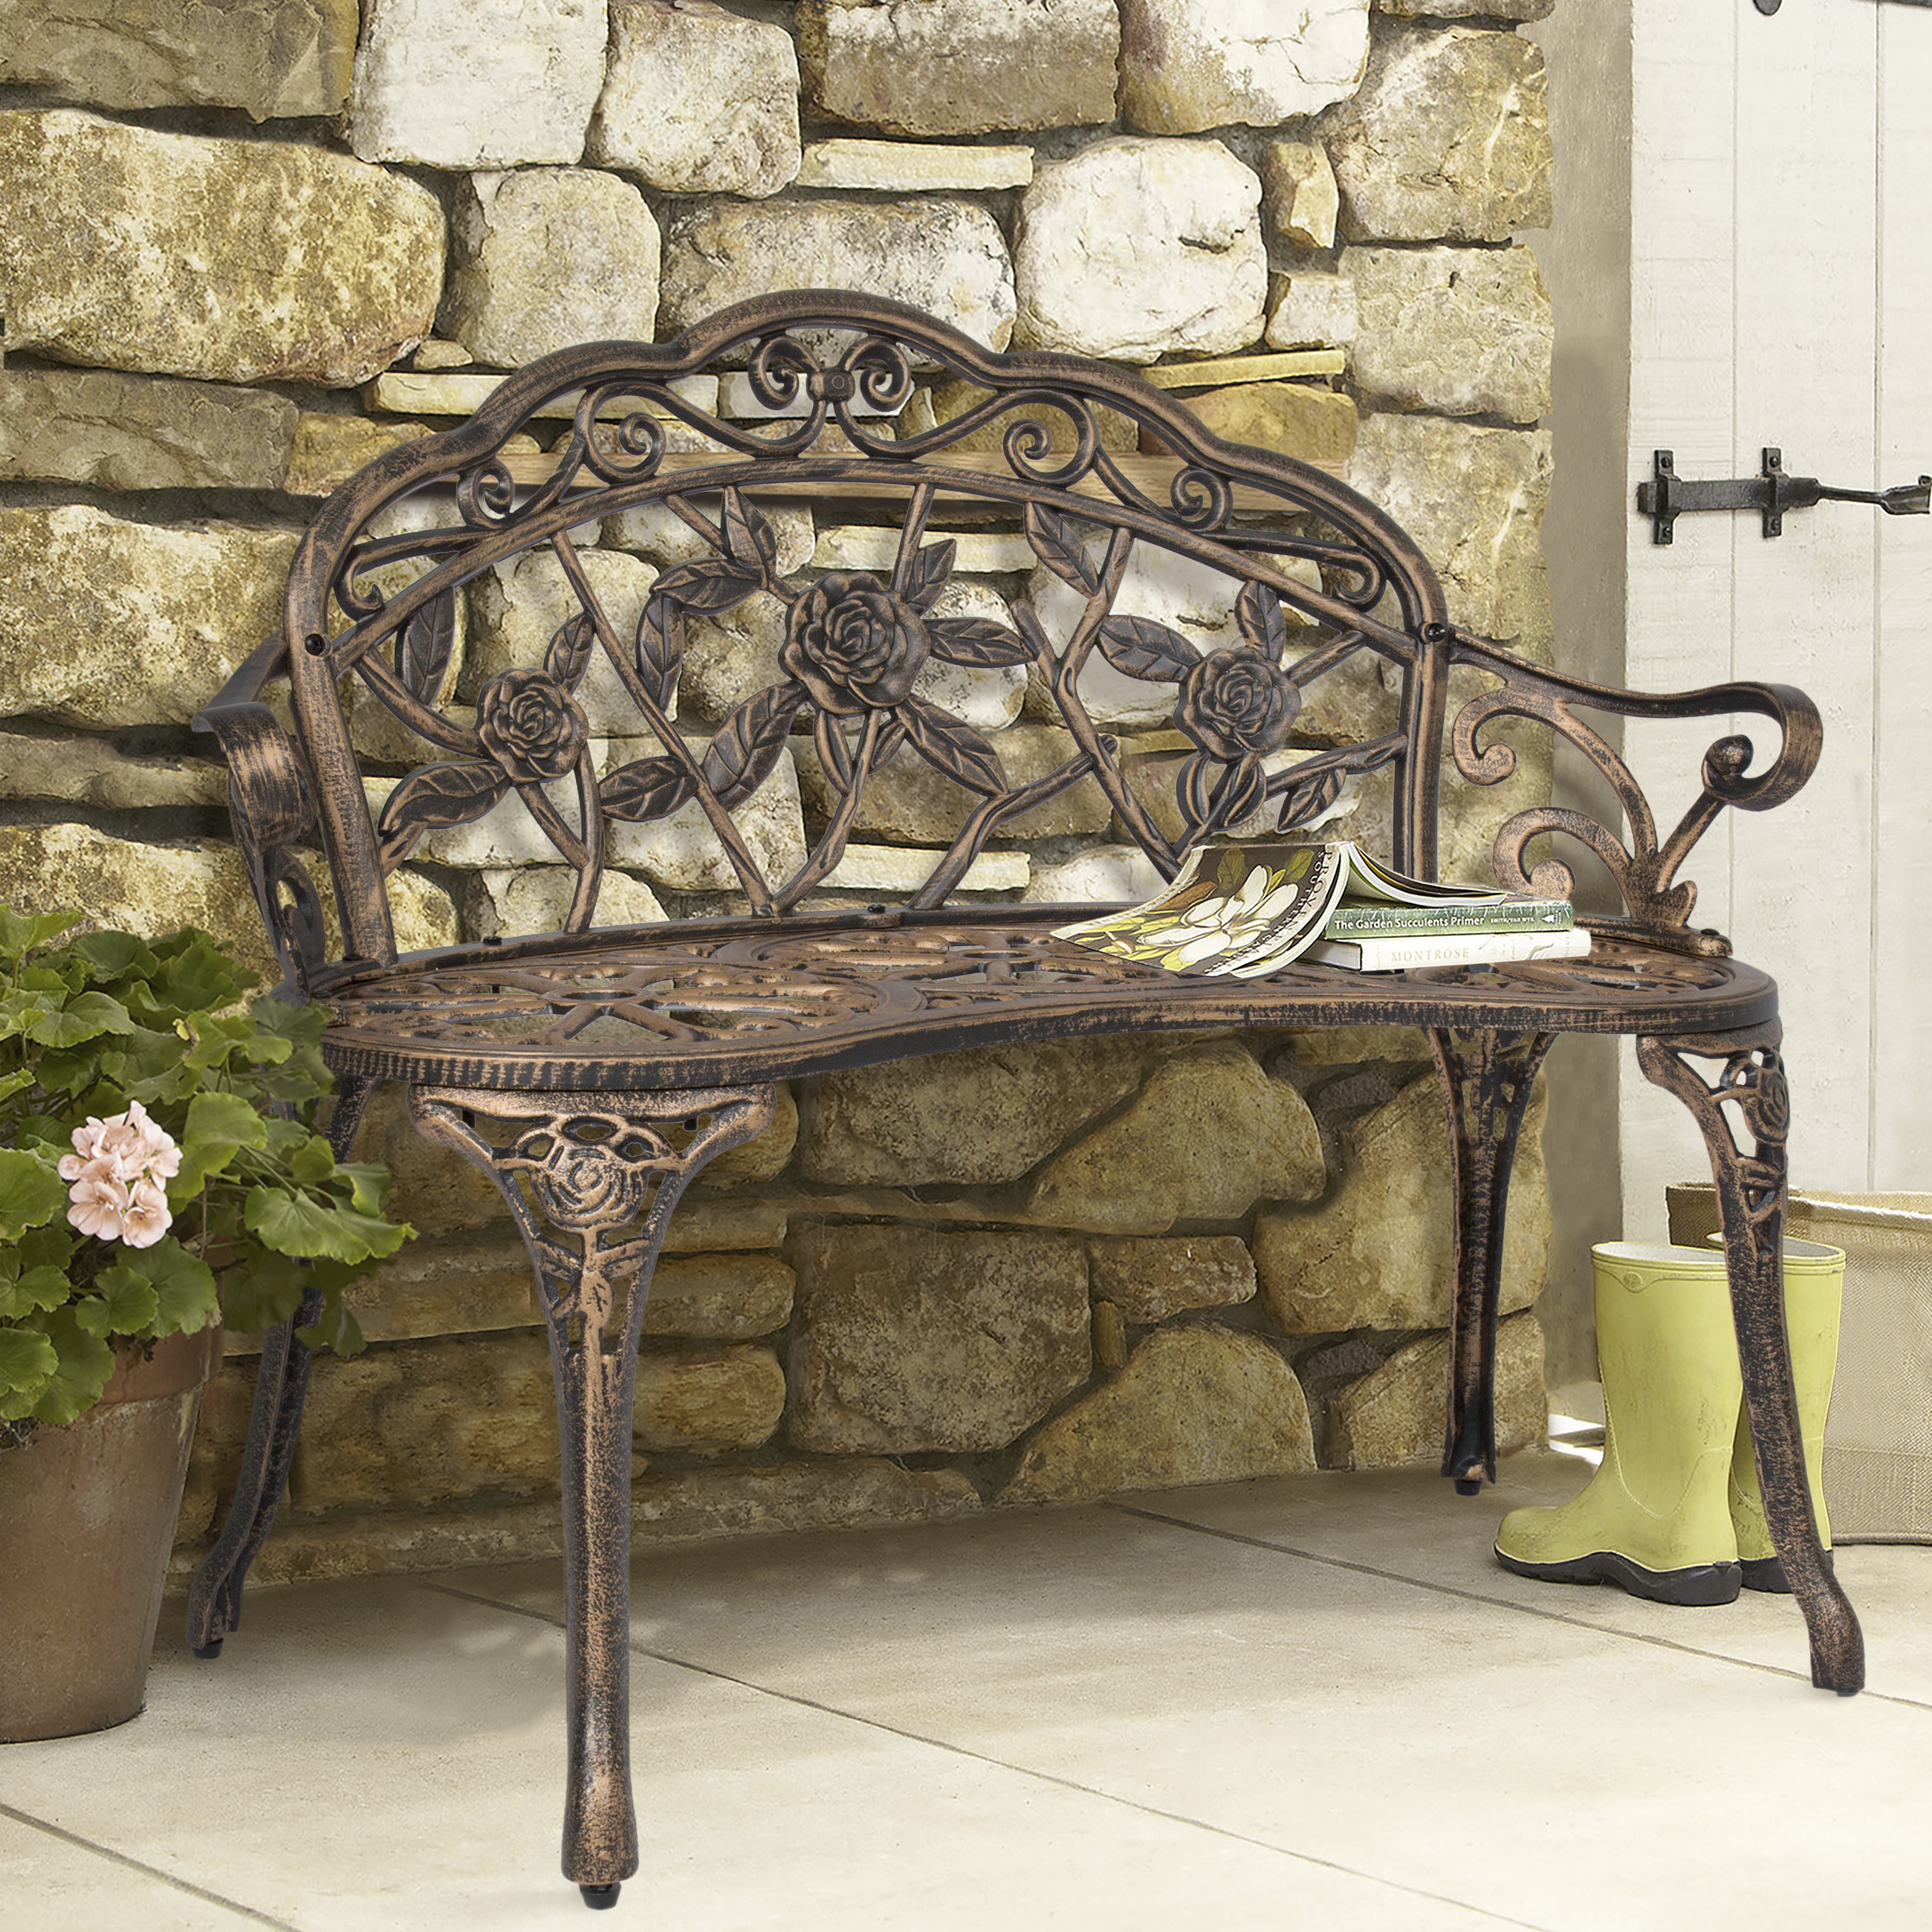 BCP Outdoor Patio Garden Bench Park Yard Furniture Cast Iron Antique Rose Bronze by